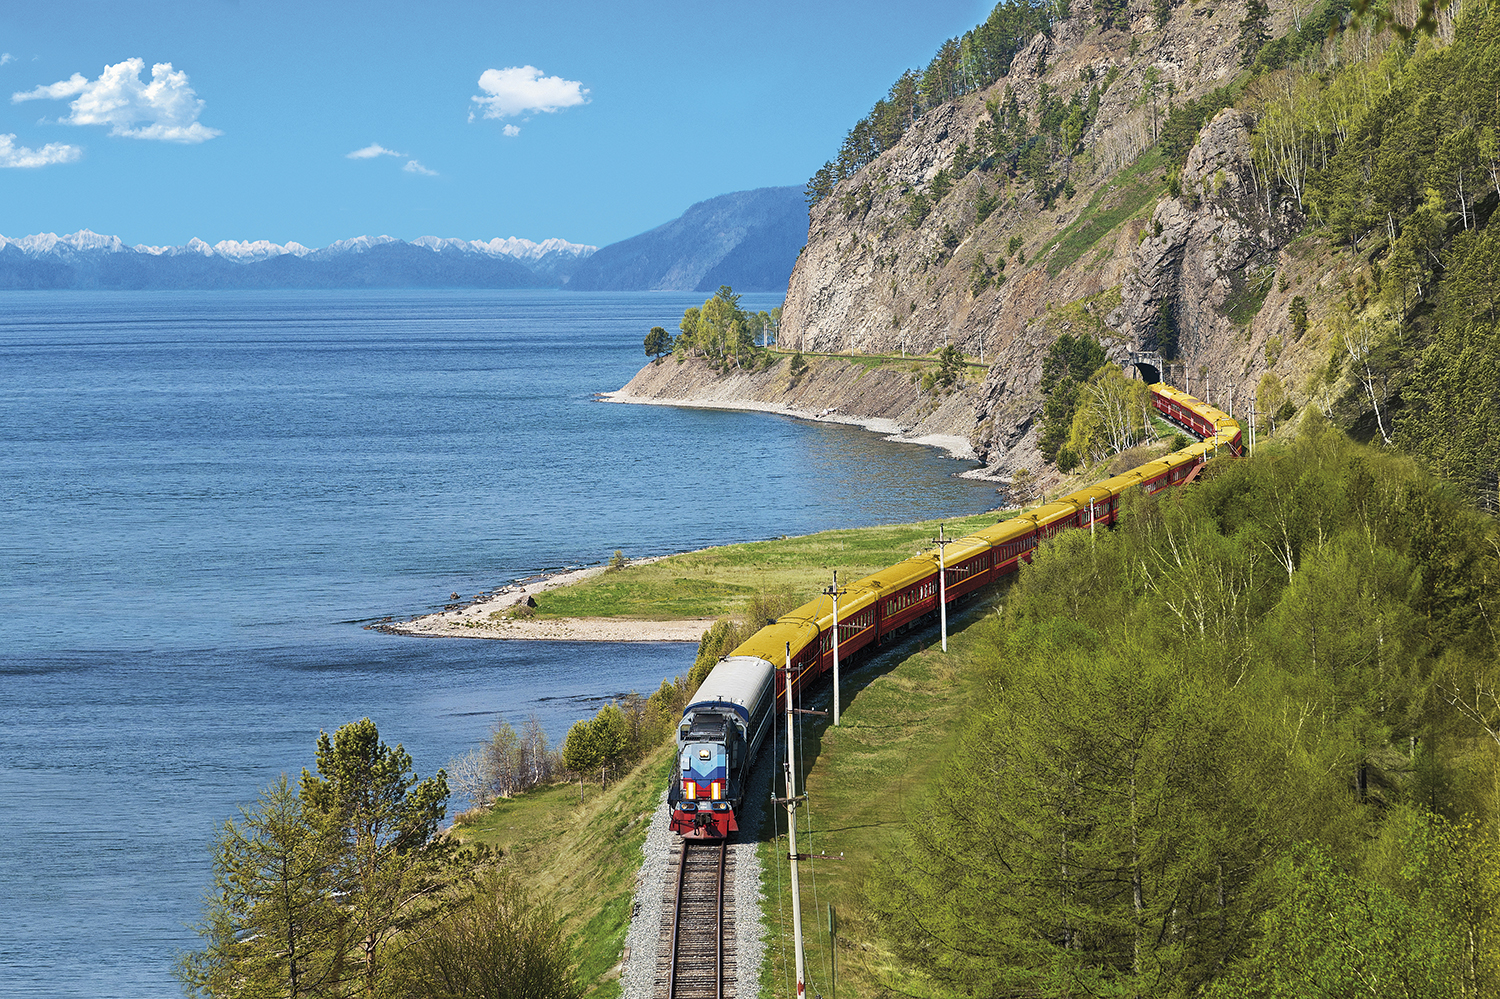 A locomotive follows a winding track separating the shore from green mountain.